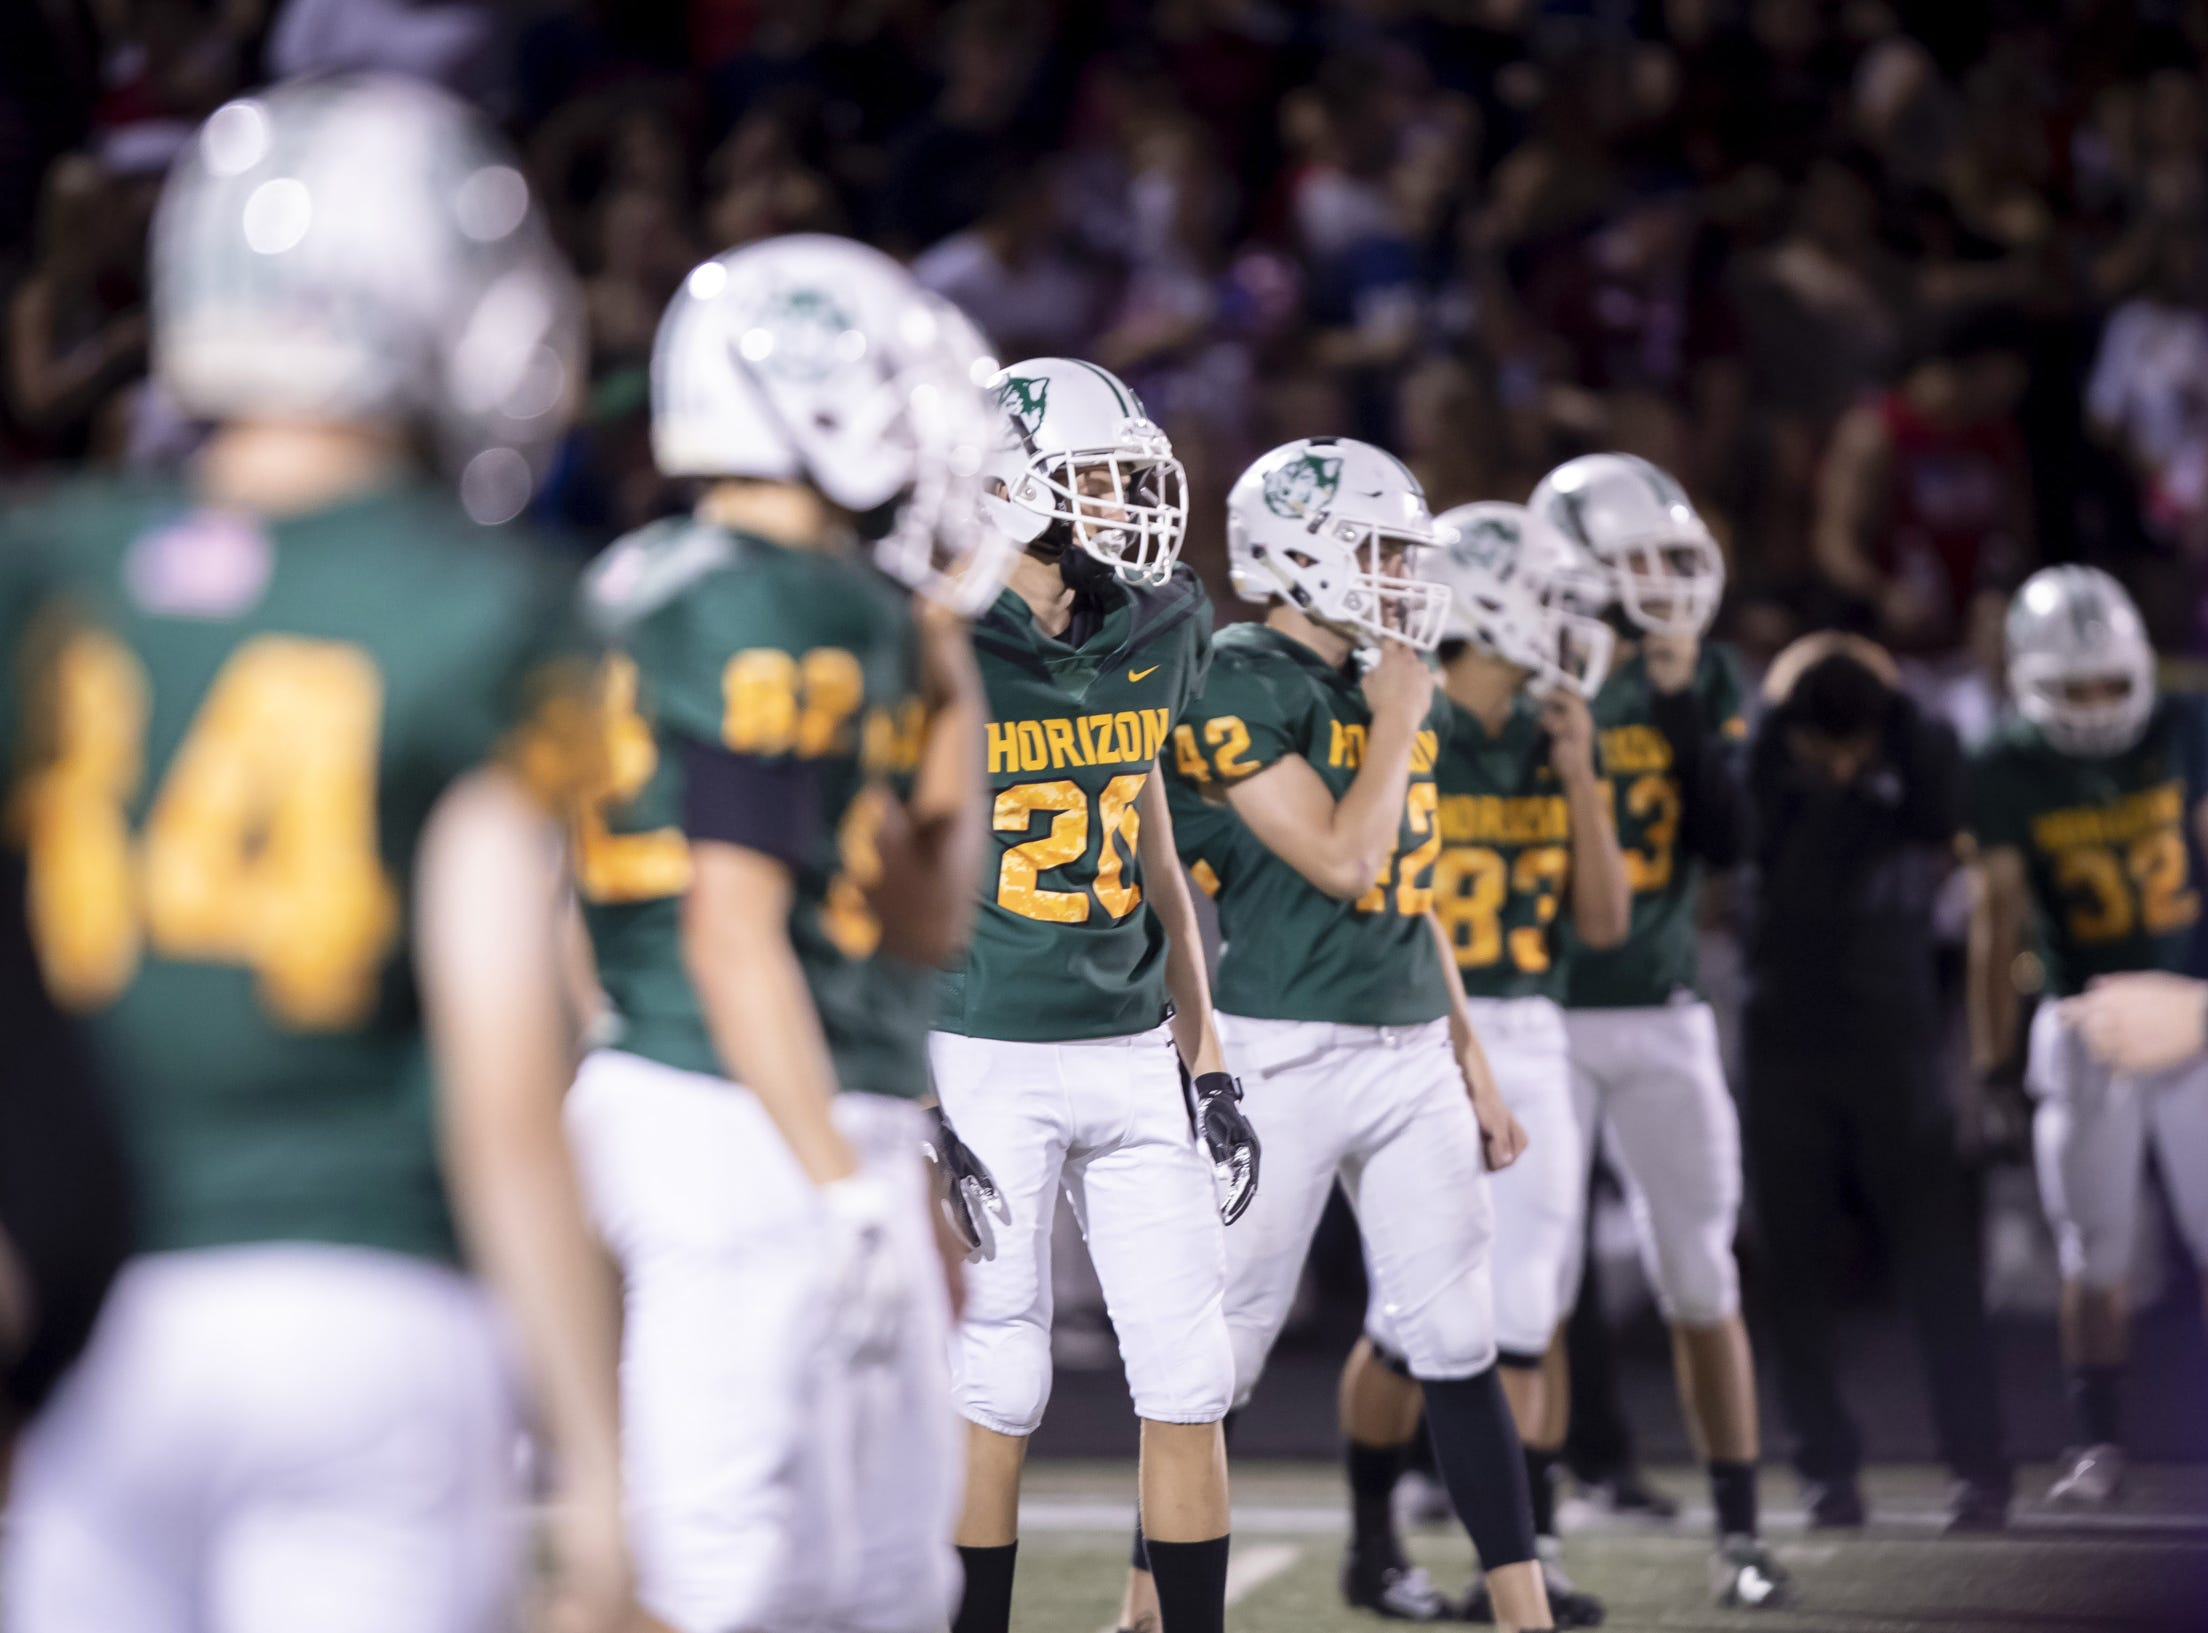 The Horizon Huskies line up for a kickoff against the Notre Dame Prep Saints at Horizon High School on Friday, October 5, 2018 in Scottsdale, Arizona. #azhsfb